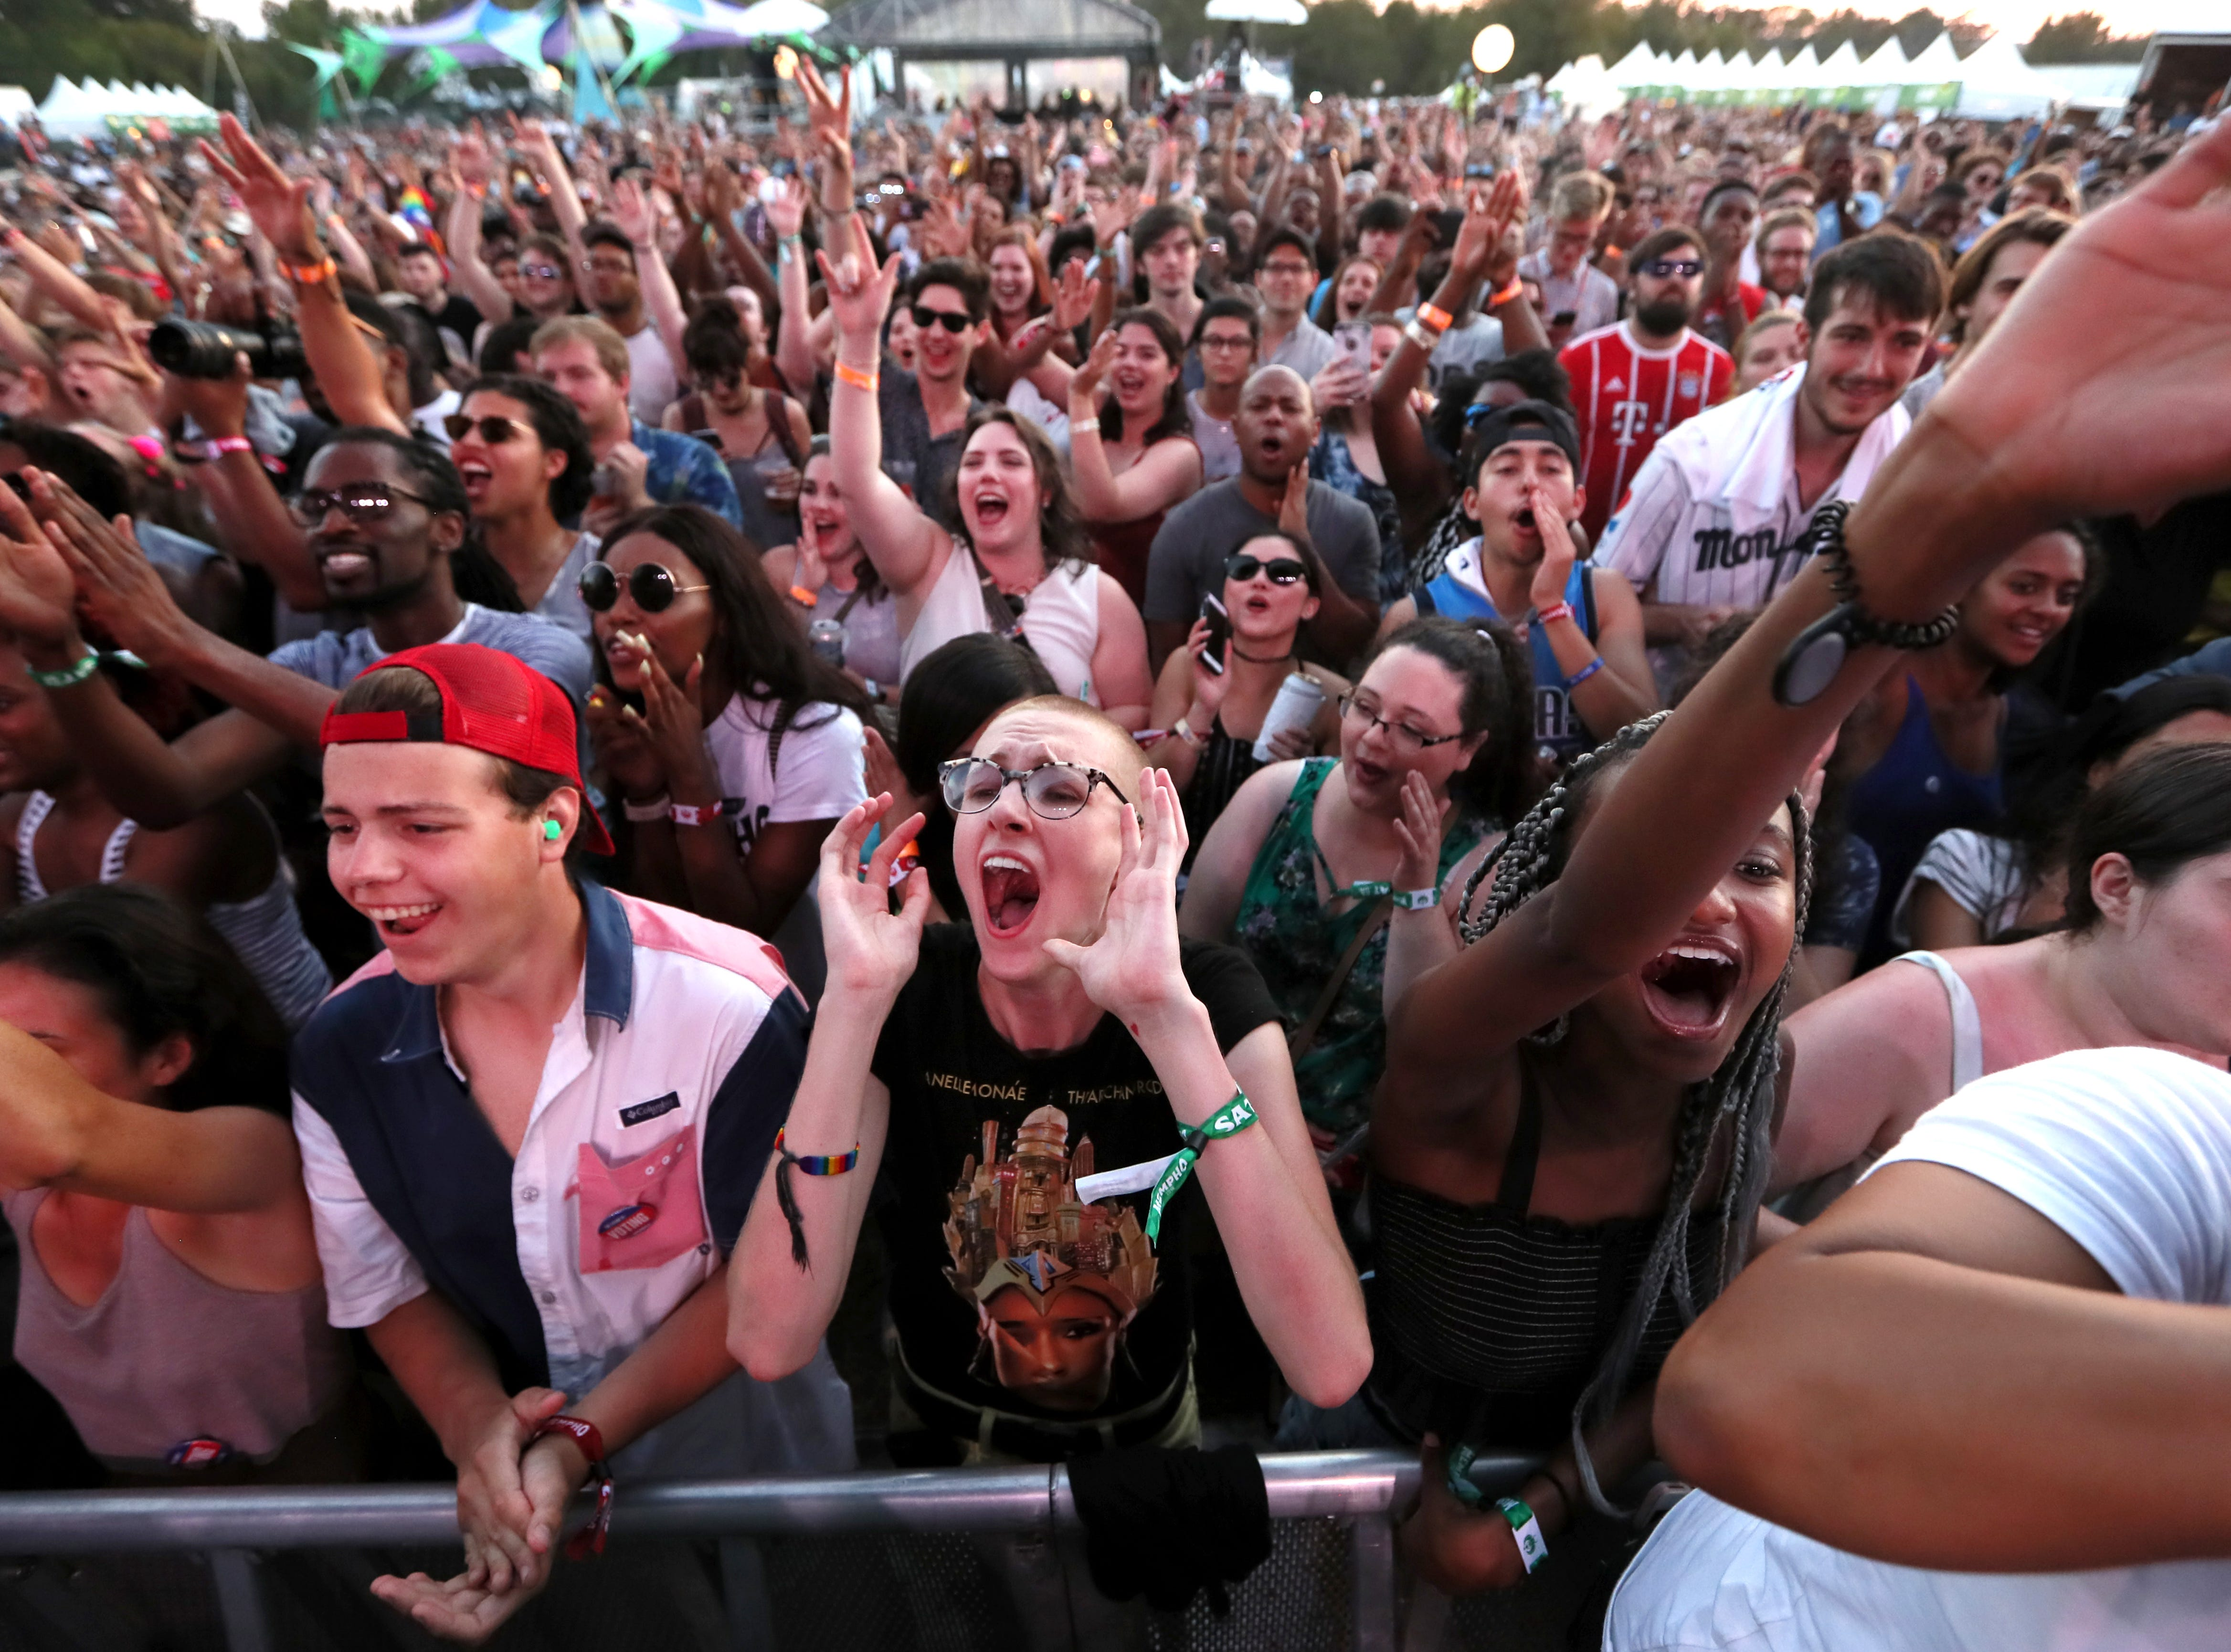 Fans cheer on Janelle Monáe during the second annual Mempho Music Fest at Shelby Farms Park on Saturday, Oct. 6, 2018.